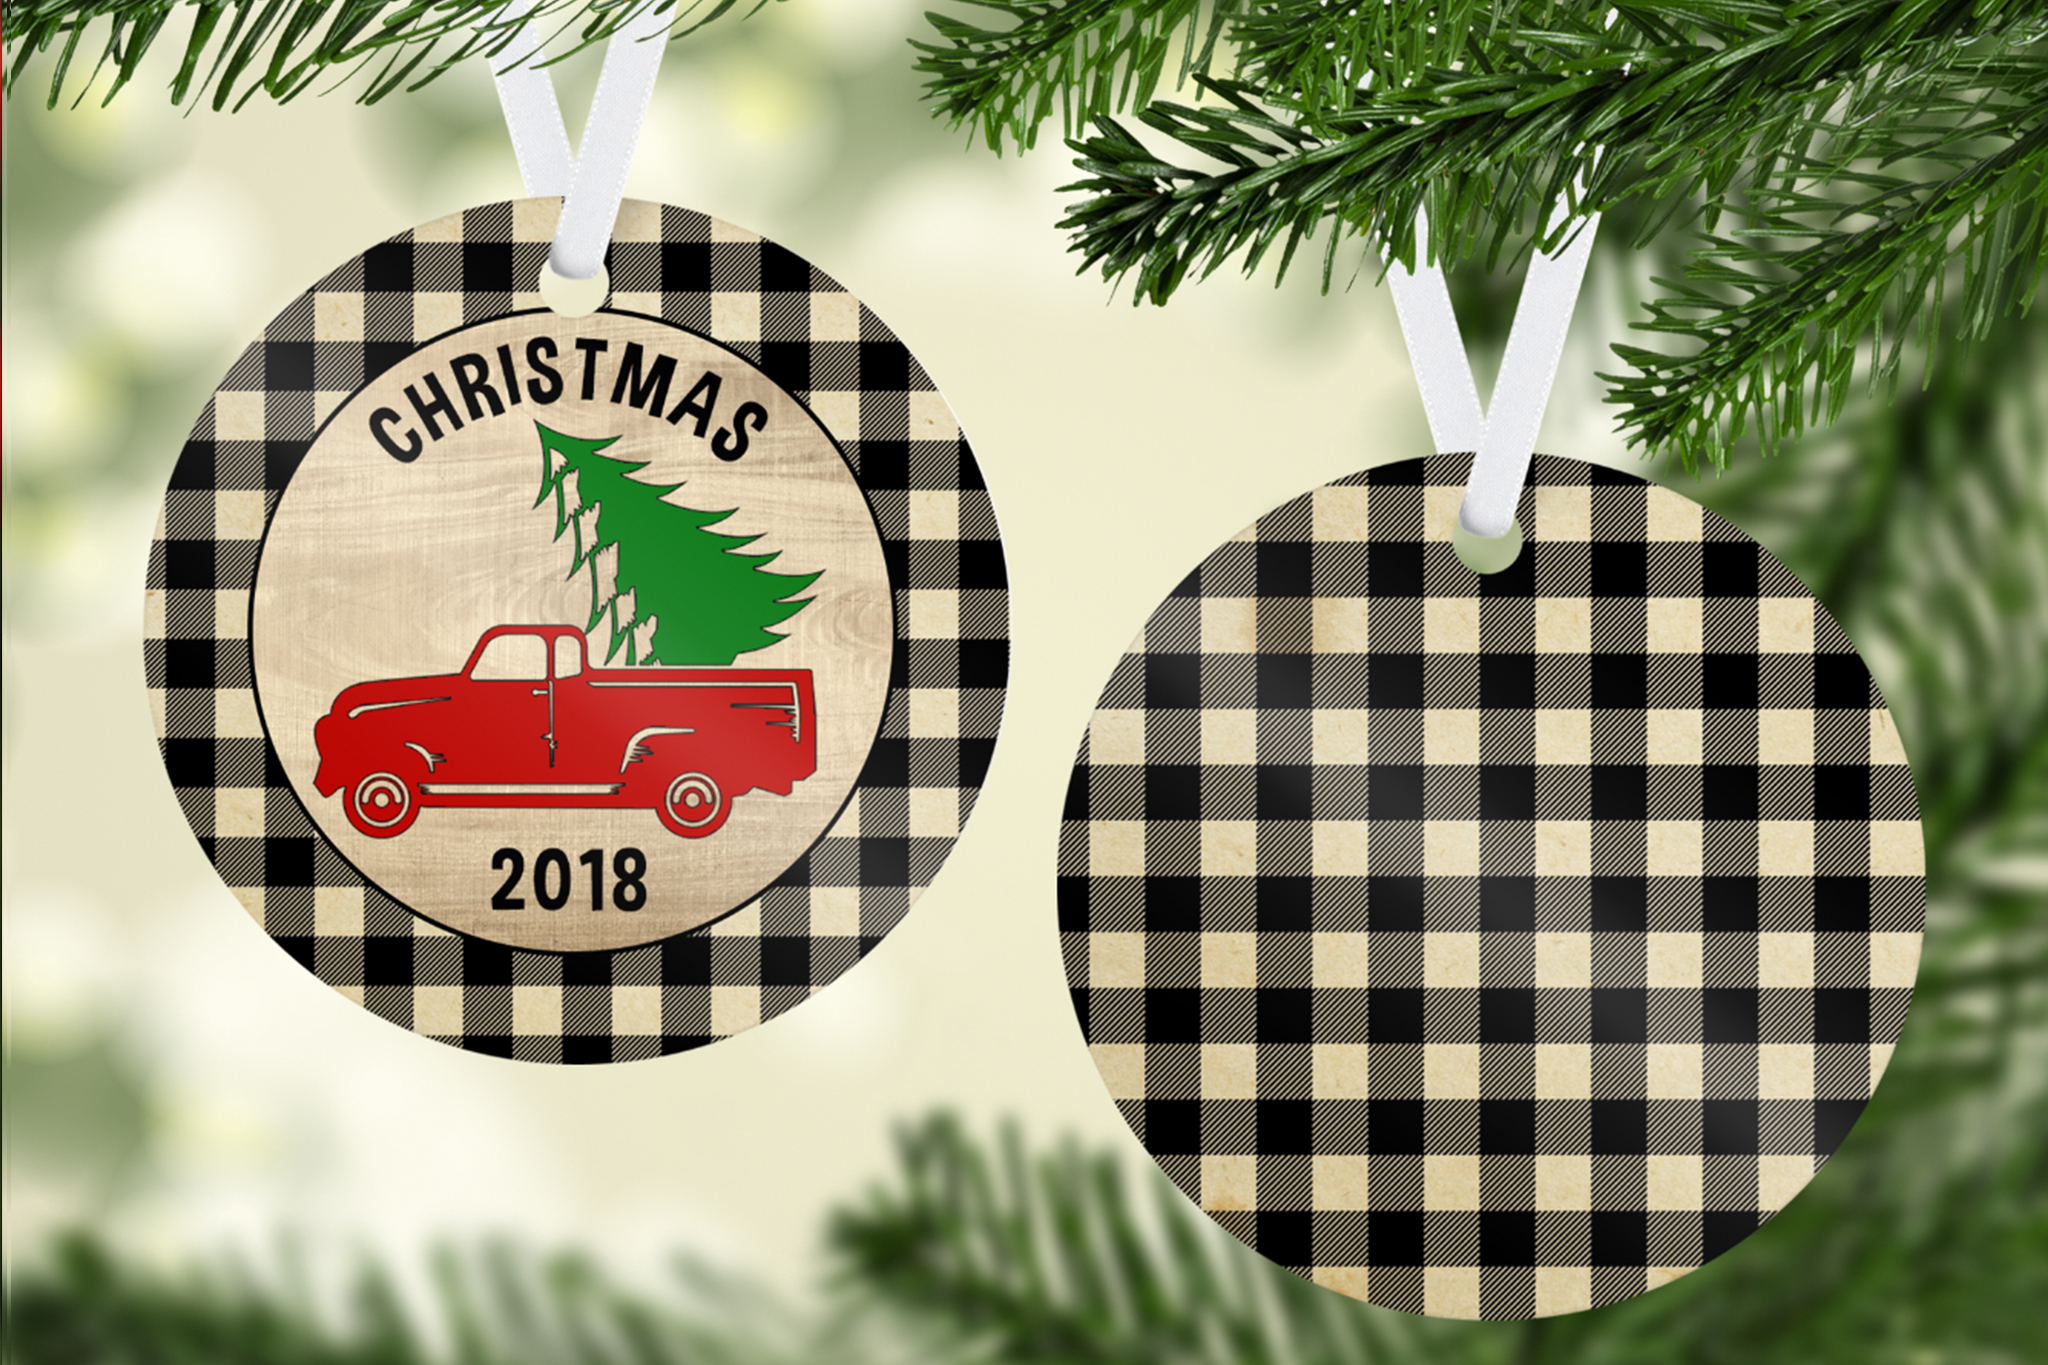 Plaid Christmas Tree & Truck Ornament Template example image 2